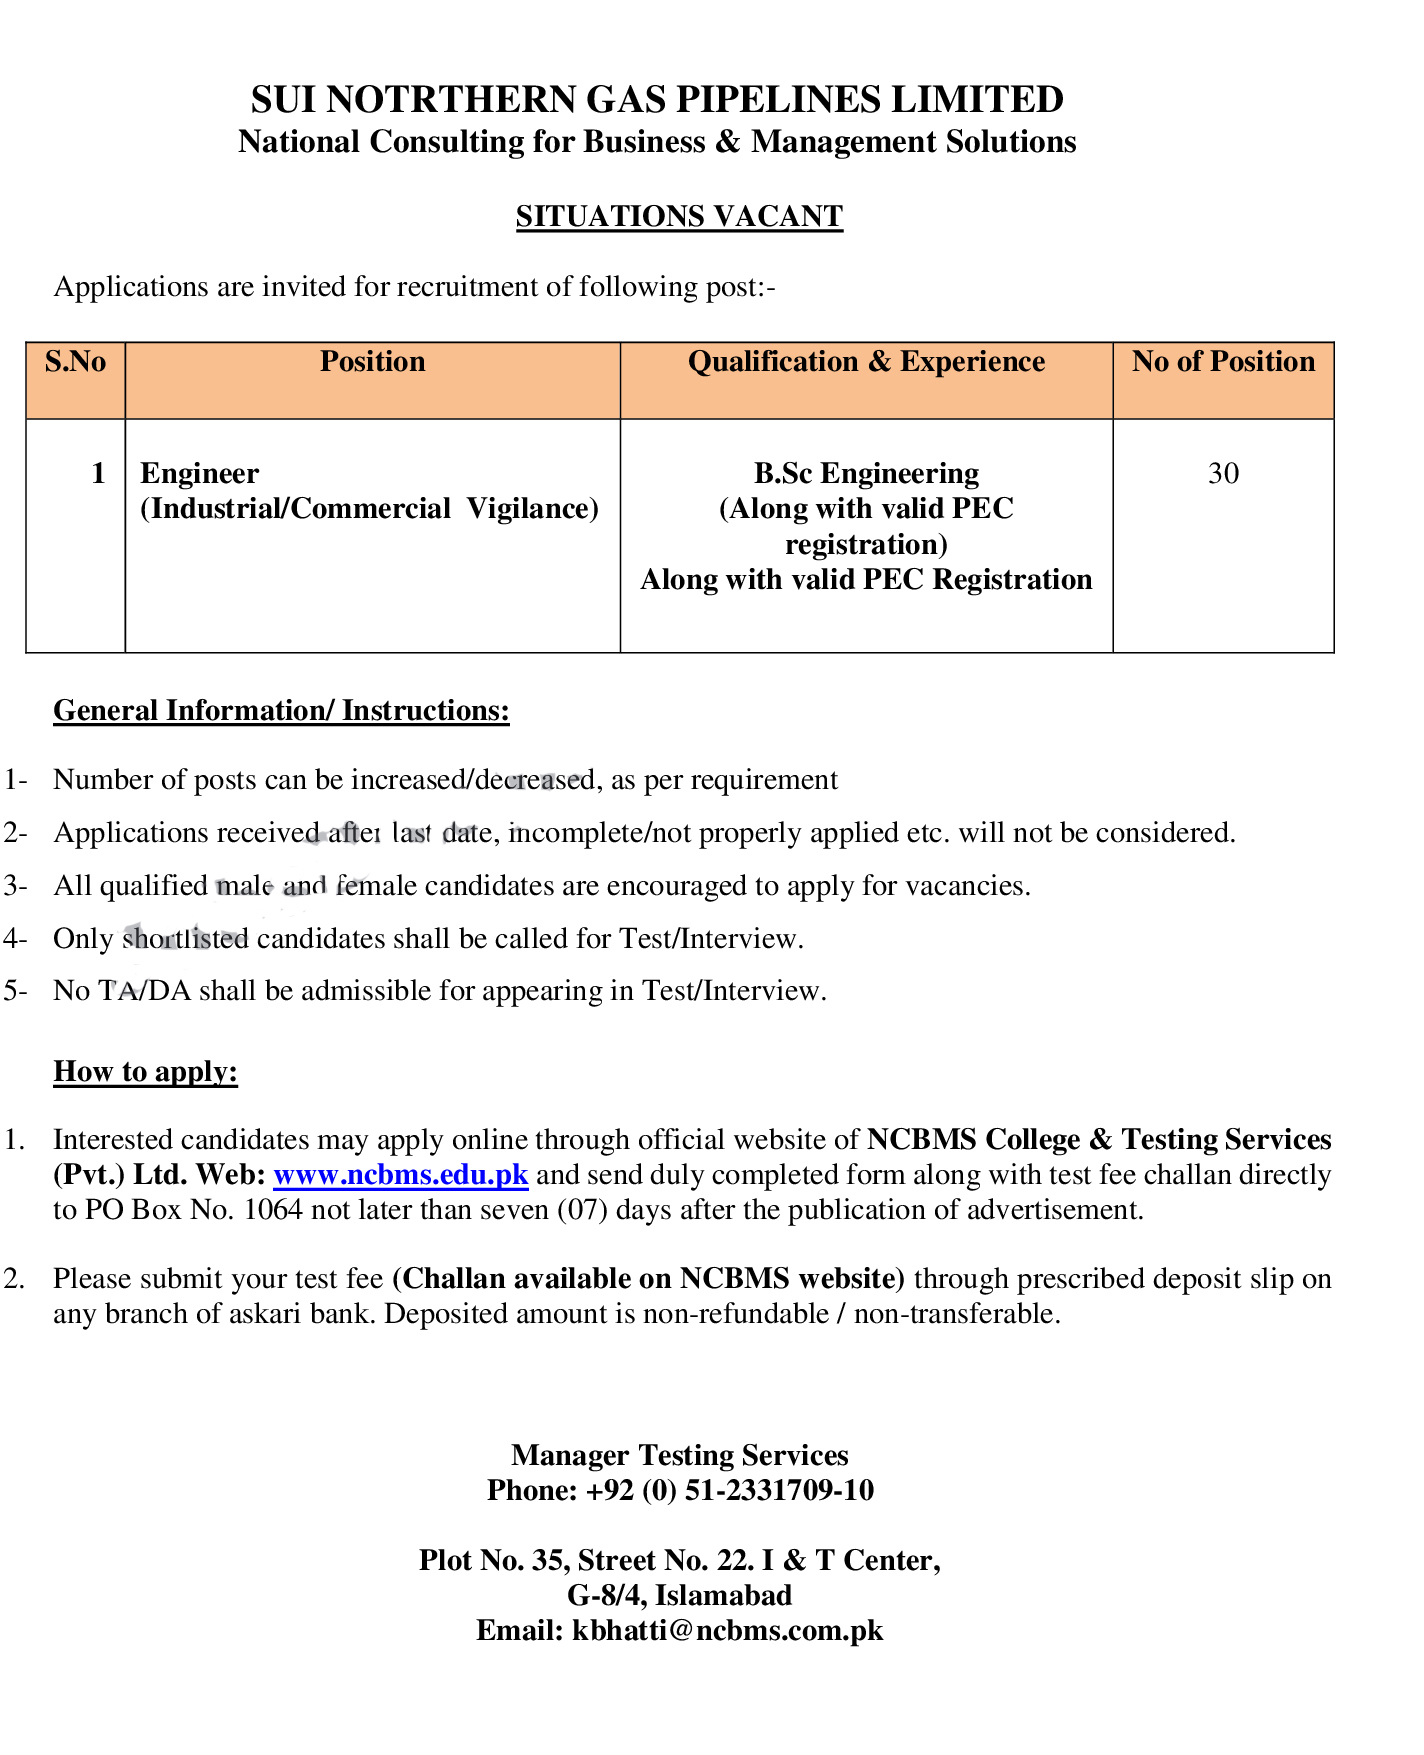 New Sui Gas Company jobs, Sui Gas Pipelines Limited jobs